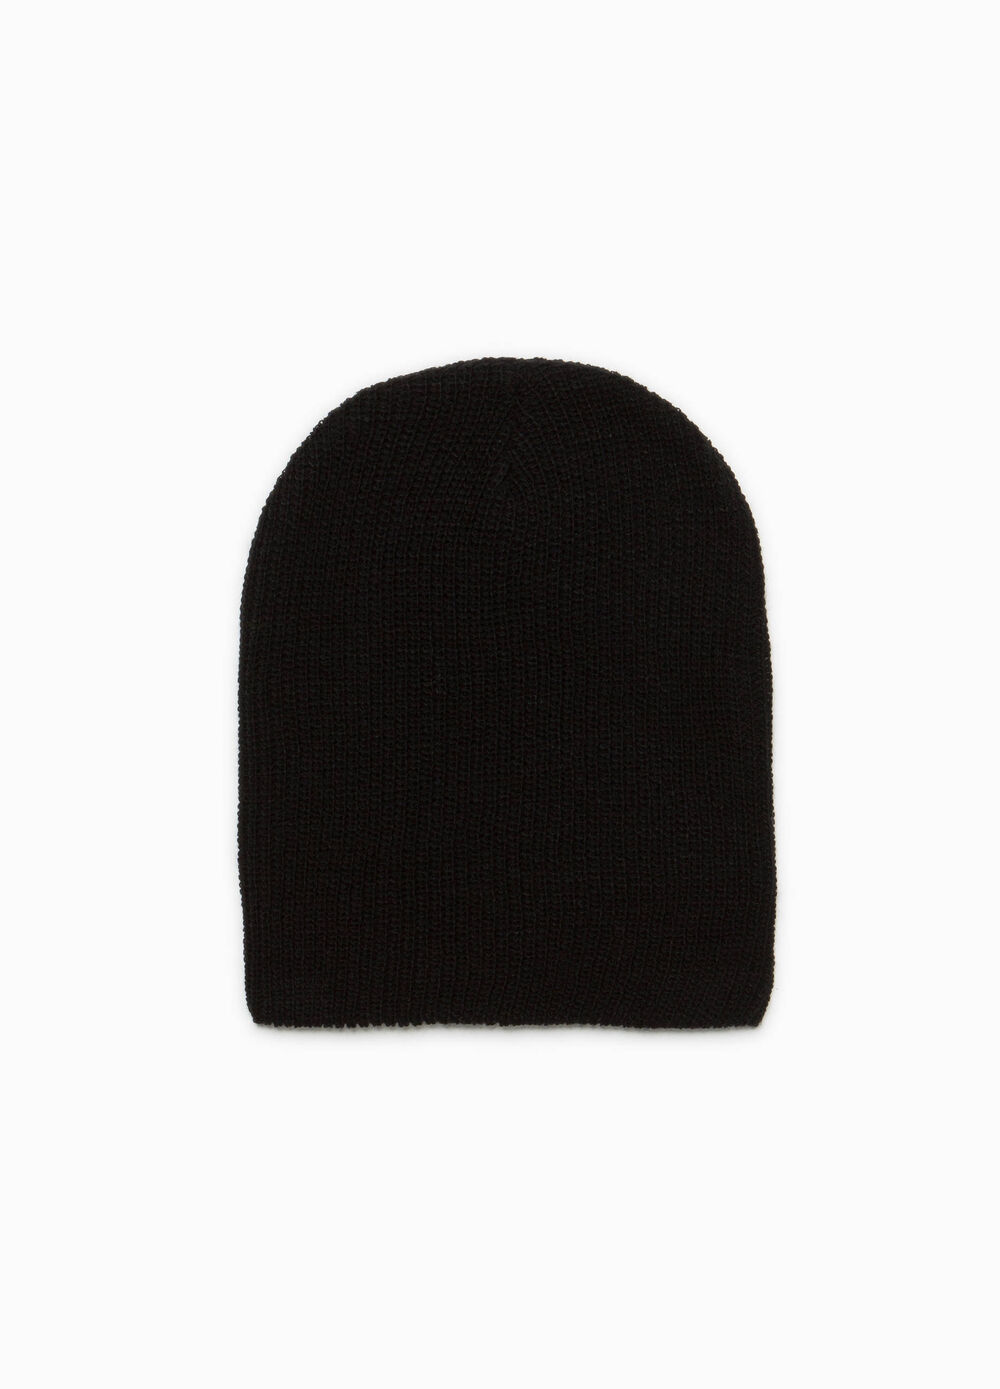 Solid colour beanie cap